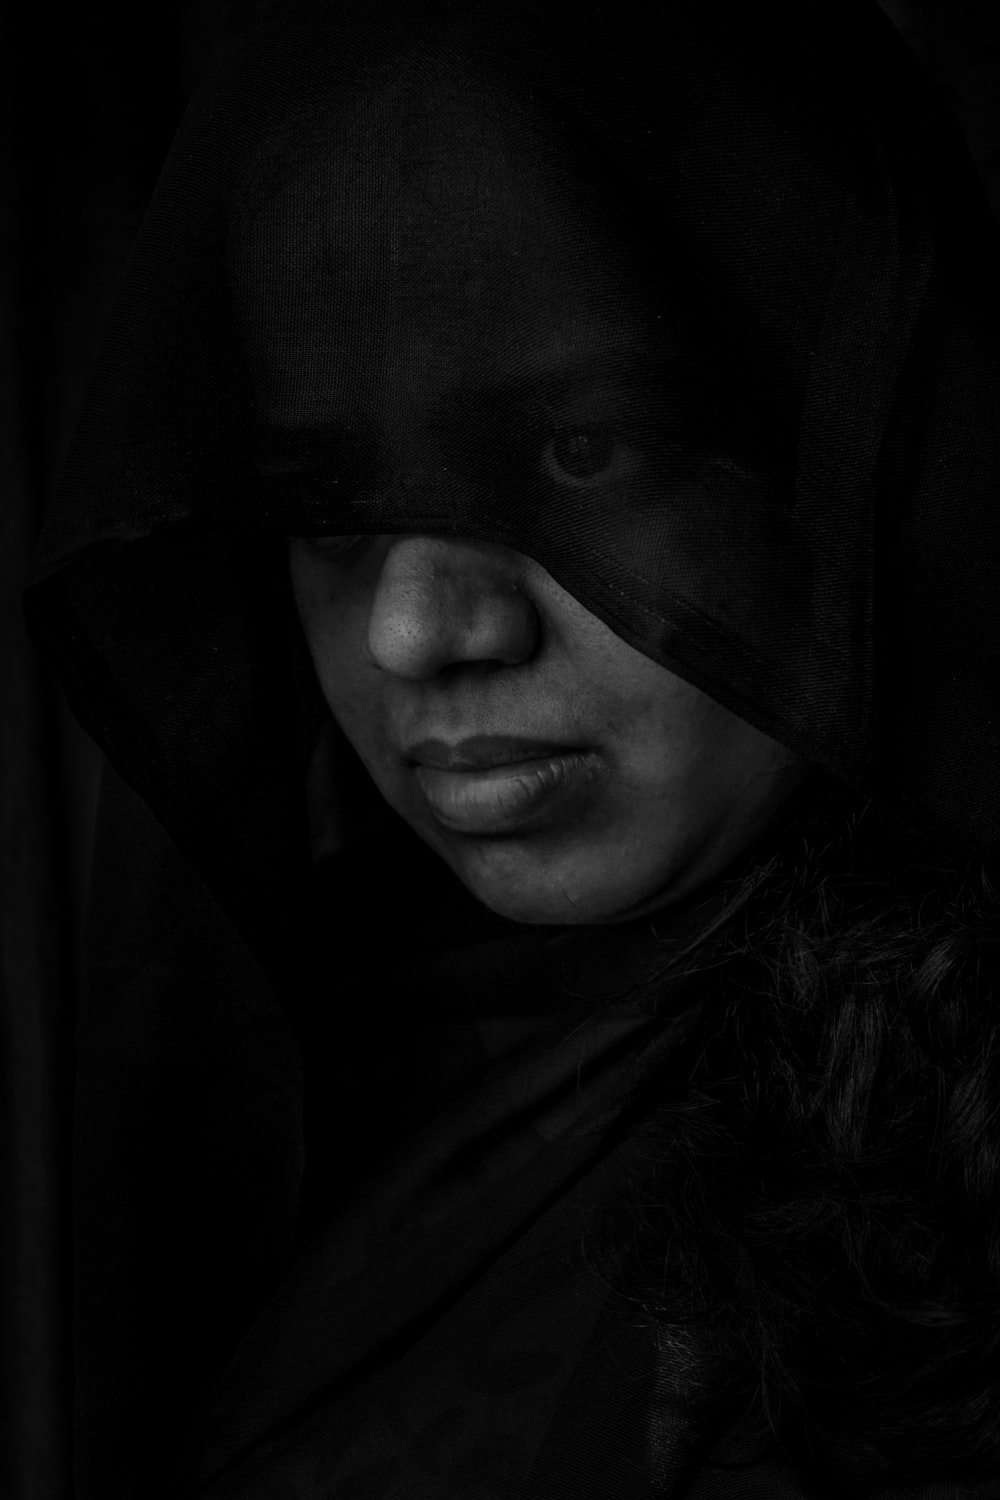 woman in black hijab in grayscale photography